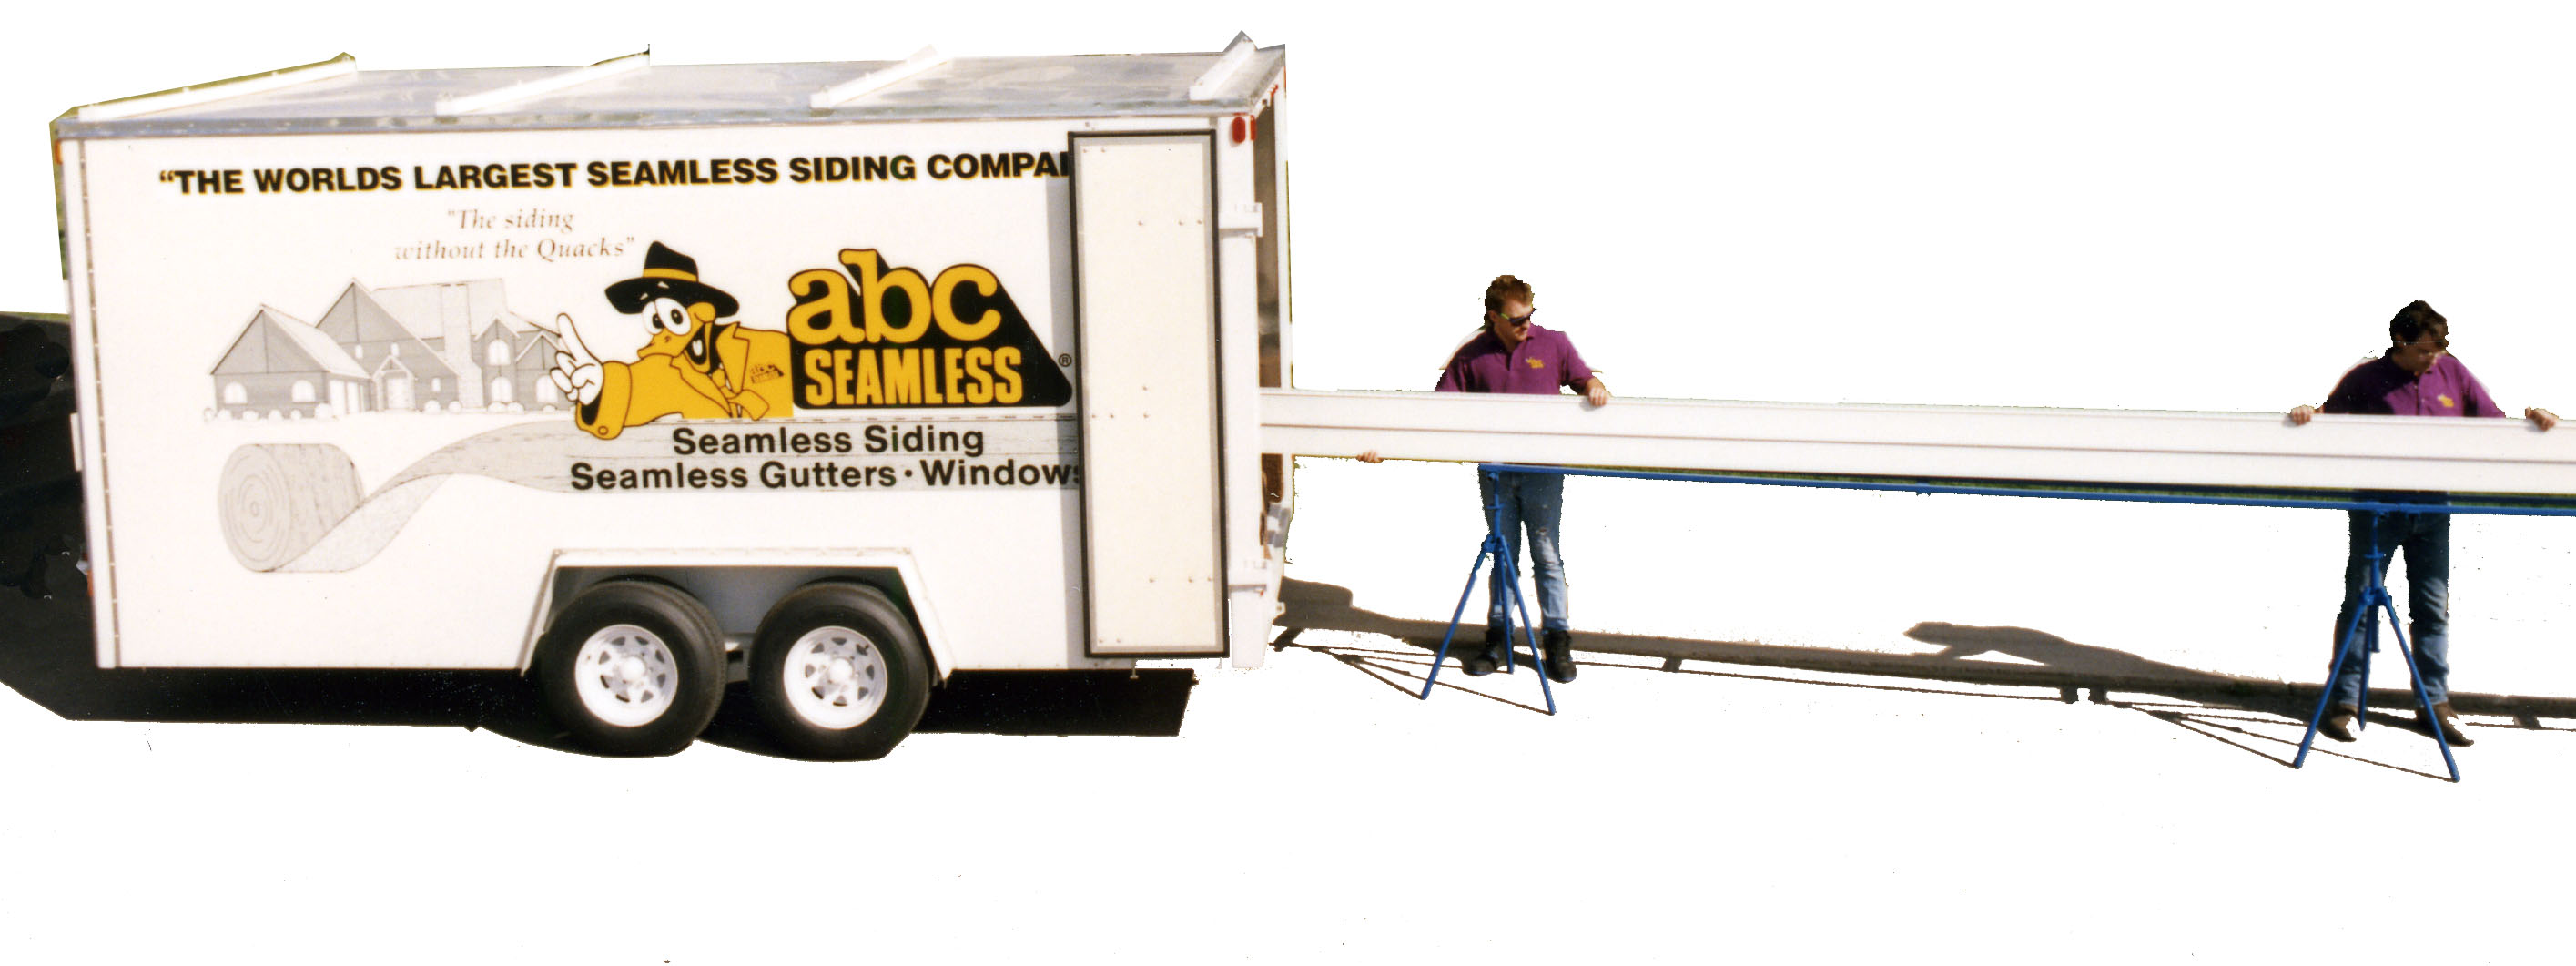 Seamless Siding Trailer